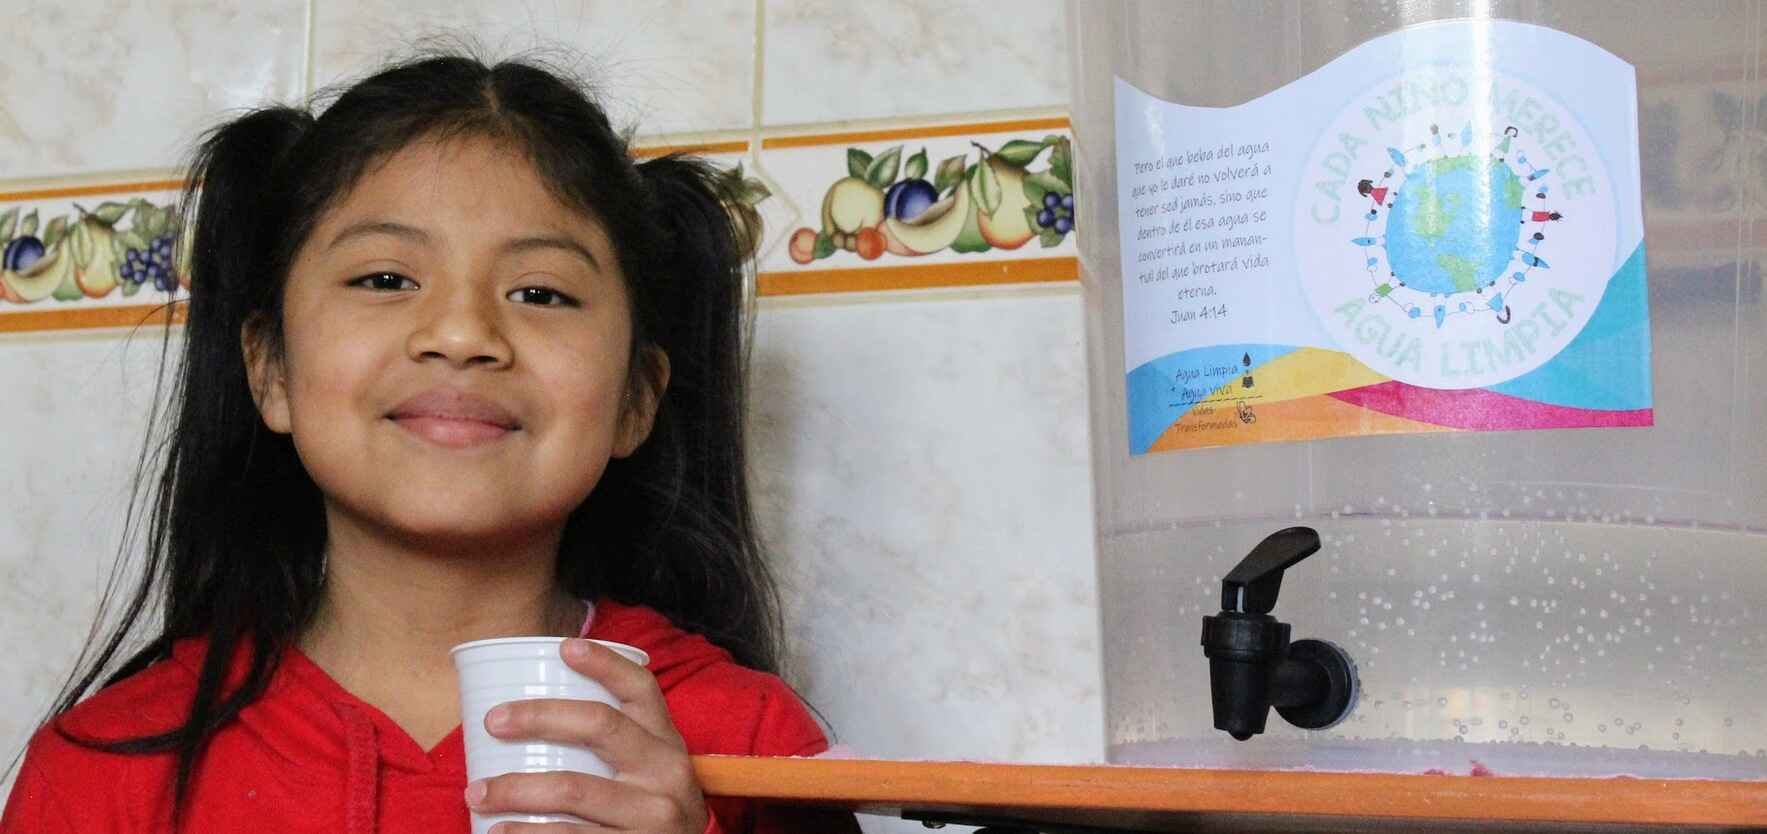 Every child deserves clean water image